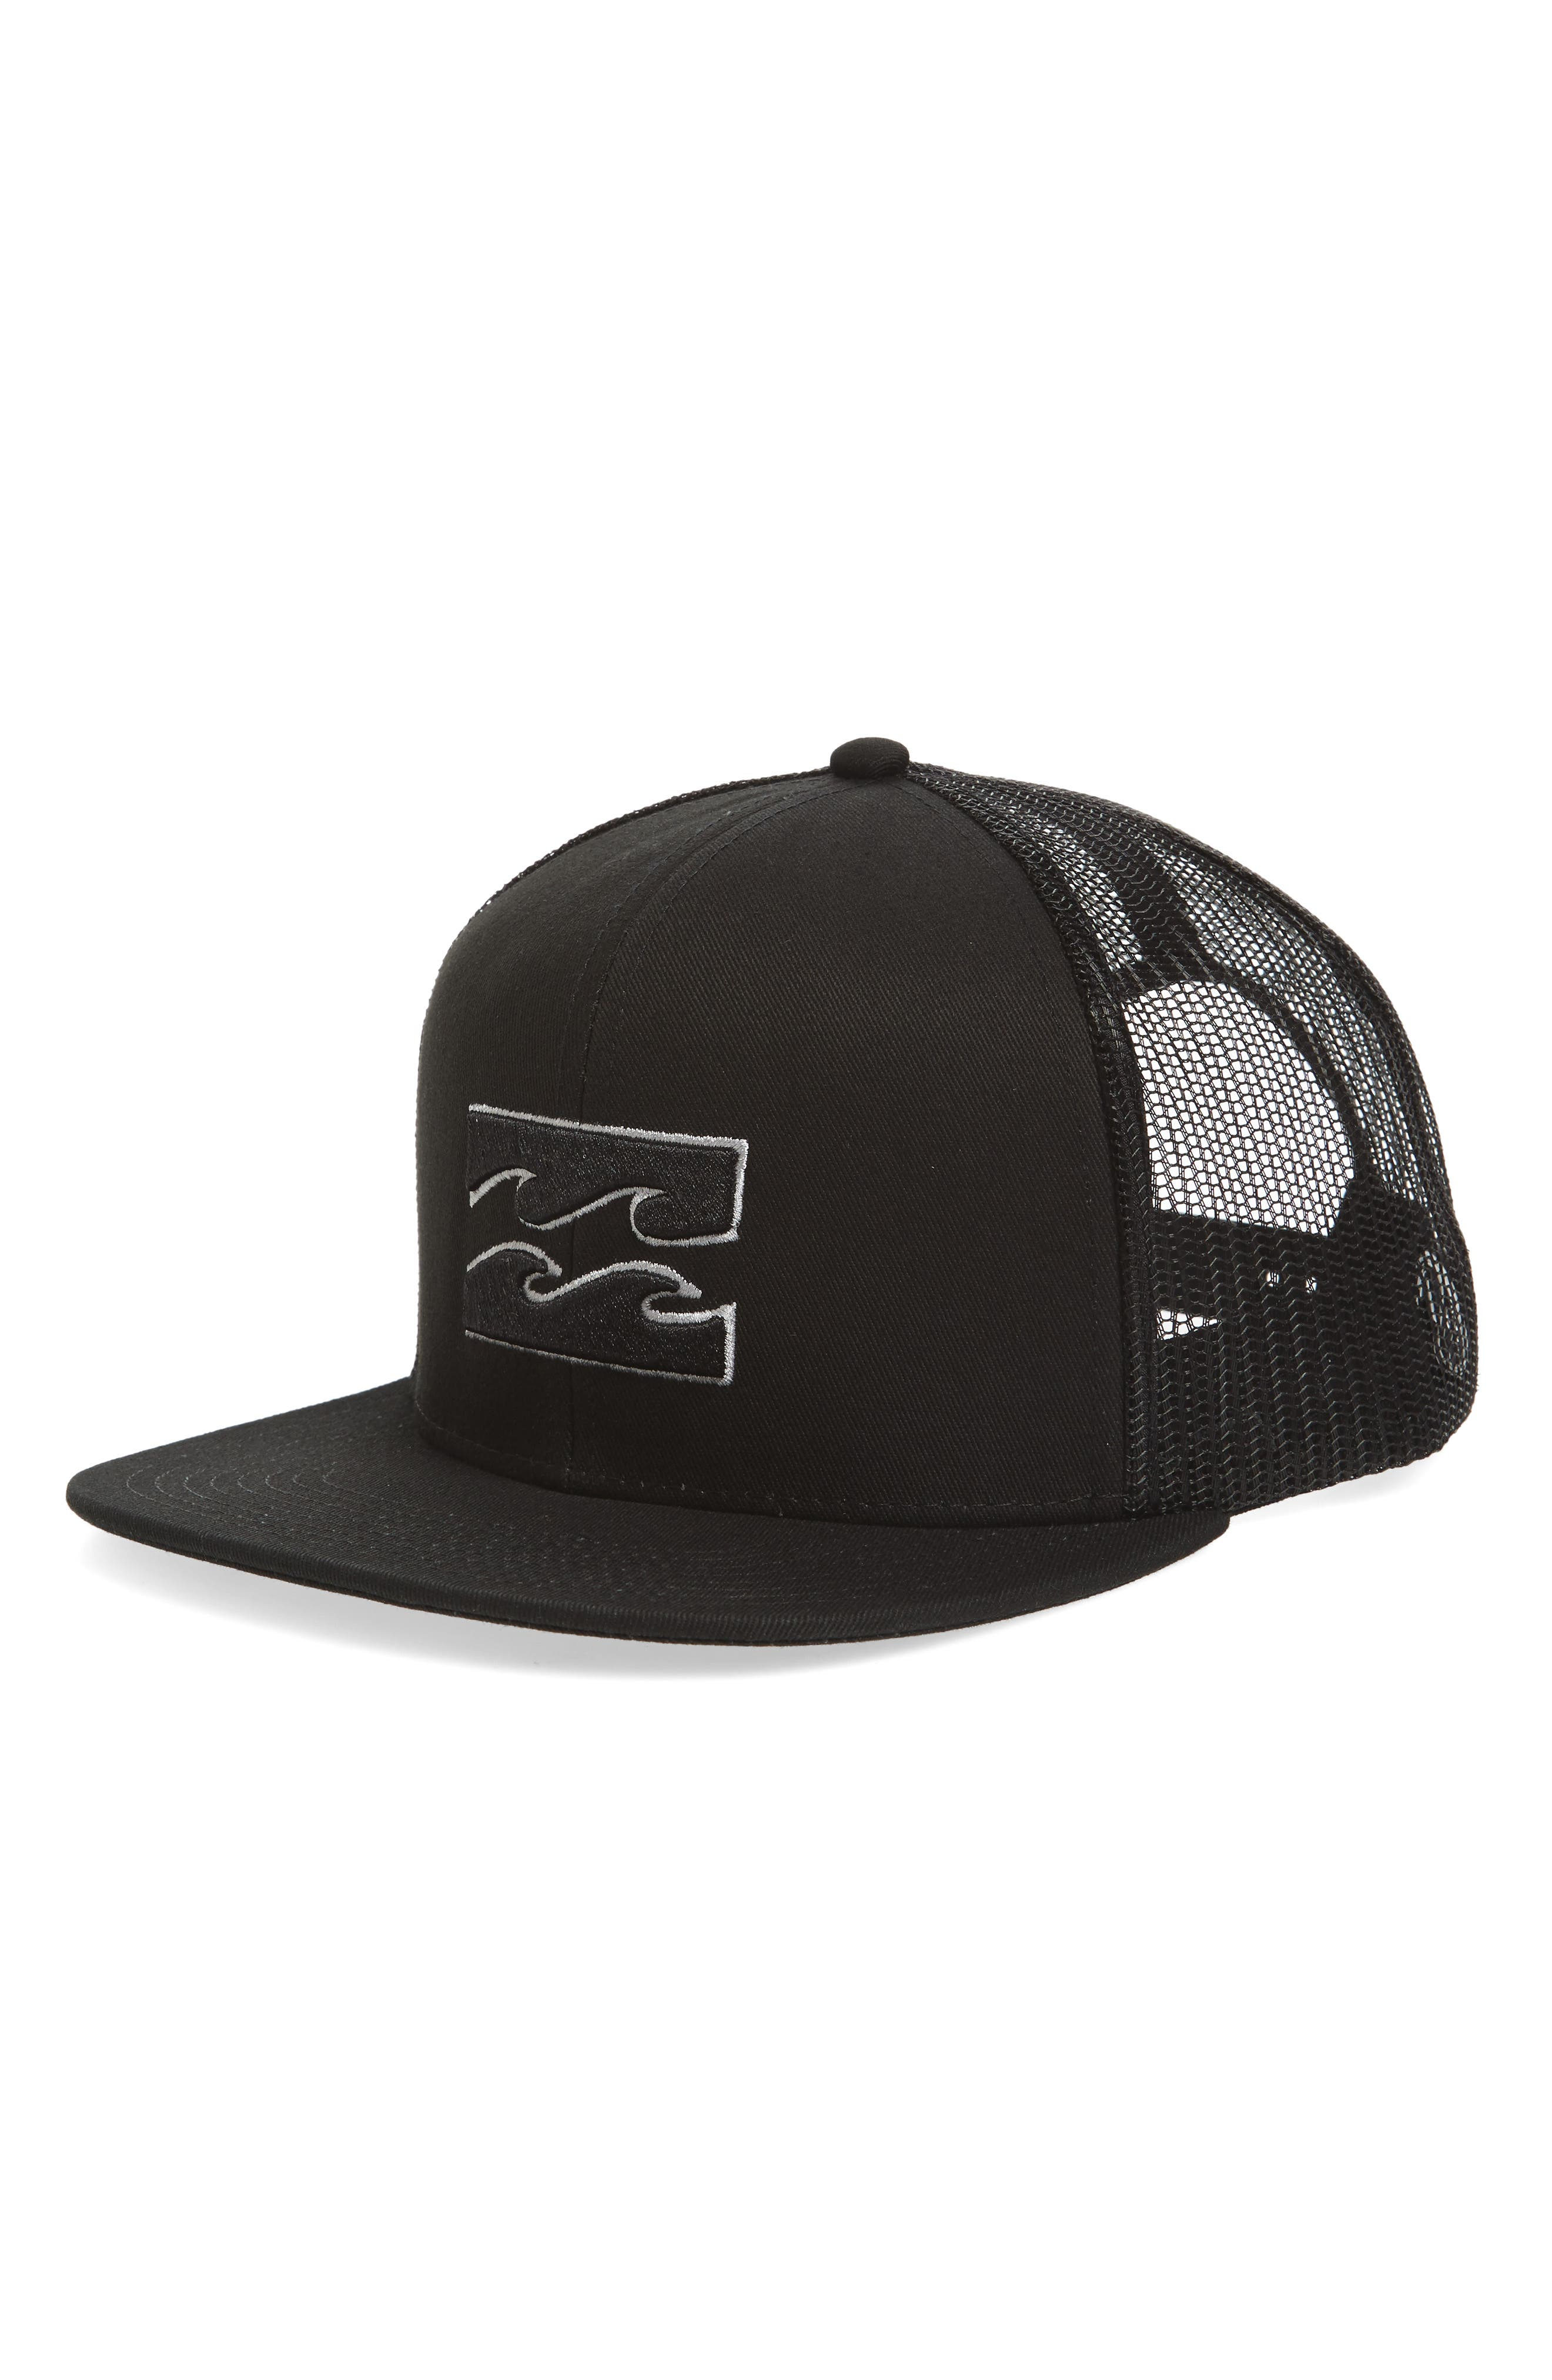 All Day Trucker Hat,                             Main thumbnail 1, color,                             027